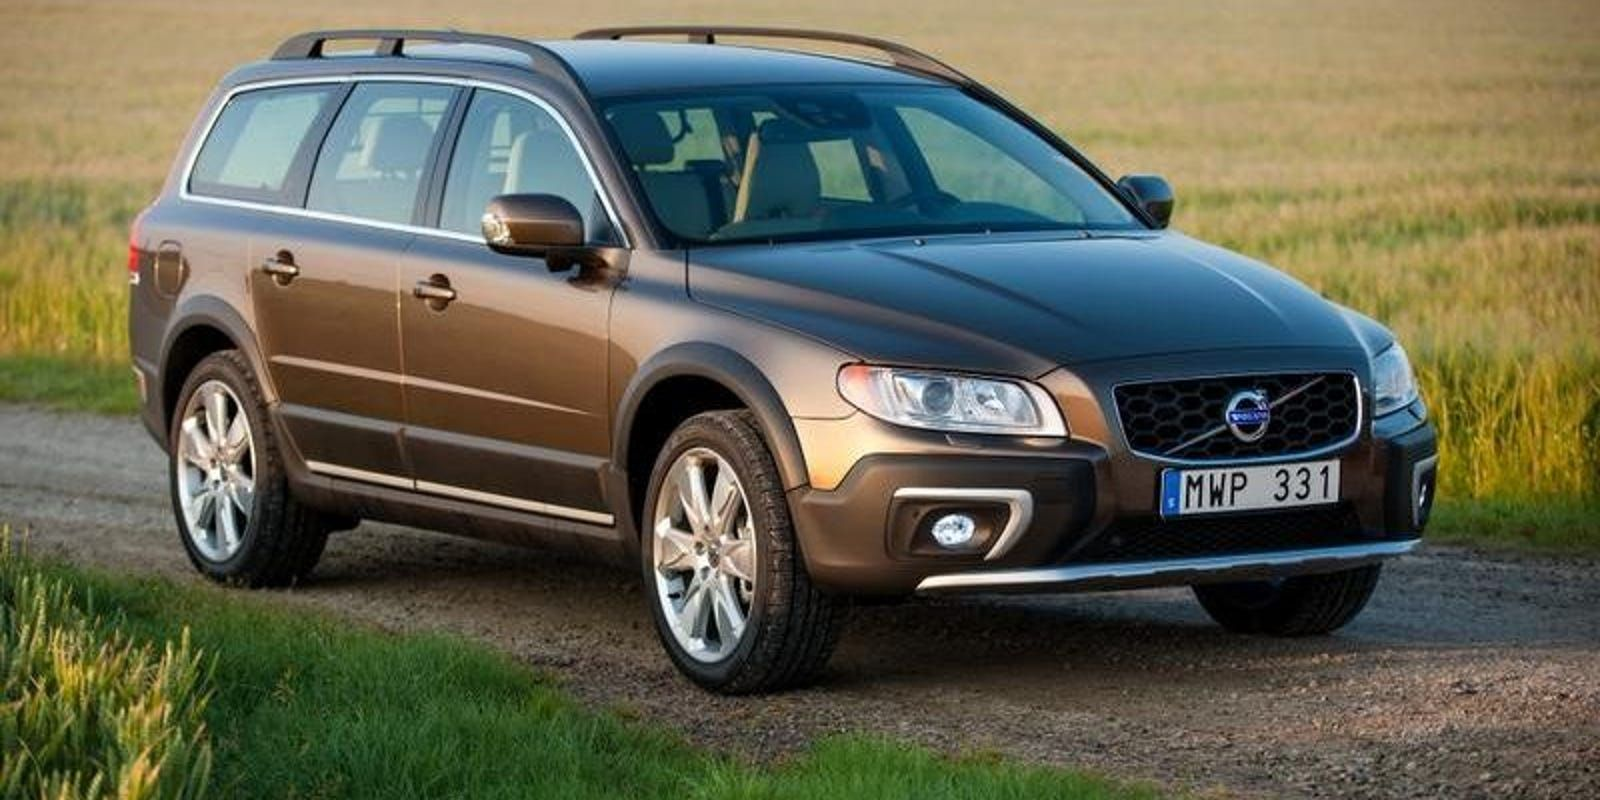 96 Best Review 2020 Volvo Xc70 Wagon Ratings Spy Shoot In 2020 Volvo New Cars Volvo Models